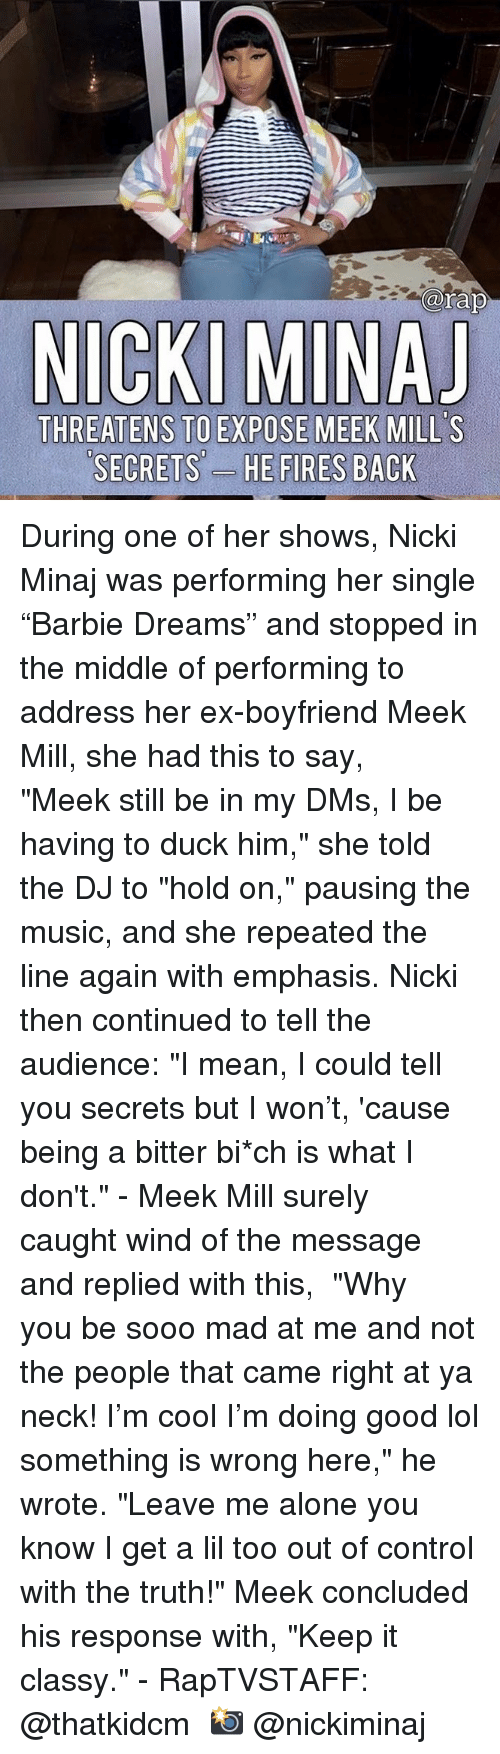 """Being Alone, Lol, and Meek Mill: arap  THREATENS TO EXPOSE MEEK MILL'S  SECRETS'-  ES During one of her shows, Nicki Minaj was performing her single """"Barbie Dreams"""" and stopped in the middle of performing to address her ex-boyfriend Meek Mill, she had this to say,   """"Meek still be in my DMs, I be having to duck him,"""" she told the DJ to """"hold on,"""" pausing the music, and she repeated the line again with emphasis. Nicki then continued to tell the audience: """"I mean, I could tell you secrets but I won't, 'cause being a bitter bi*ch is what I don't."""" - Meek Mill surely caught wind of the message and replied with this,  """"Why you be sooo mad at me and not the people that came right at ya neck! I'm cool I'm doing good lol something is wrong here,"""" he wrote. """"Leave me alone you know I get a lil too out of control with the truth!"""" Meek concluded his response with, """"Keep it classy."""" - RapTVSTAFF: @thatkidcm 📸 @nickiminaj"""